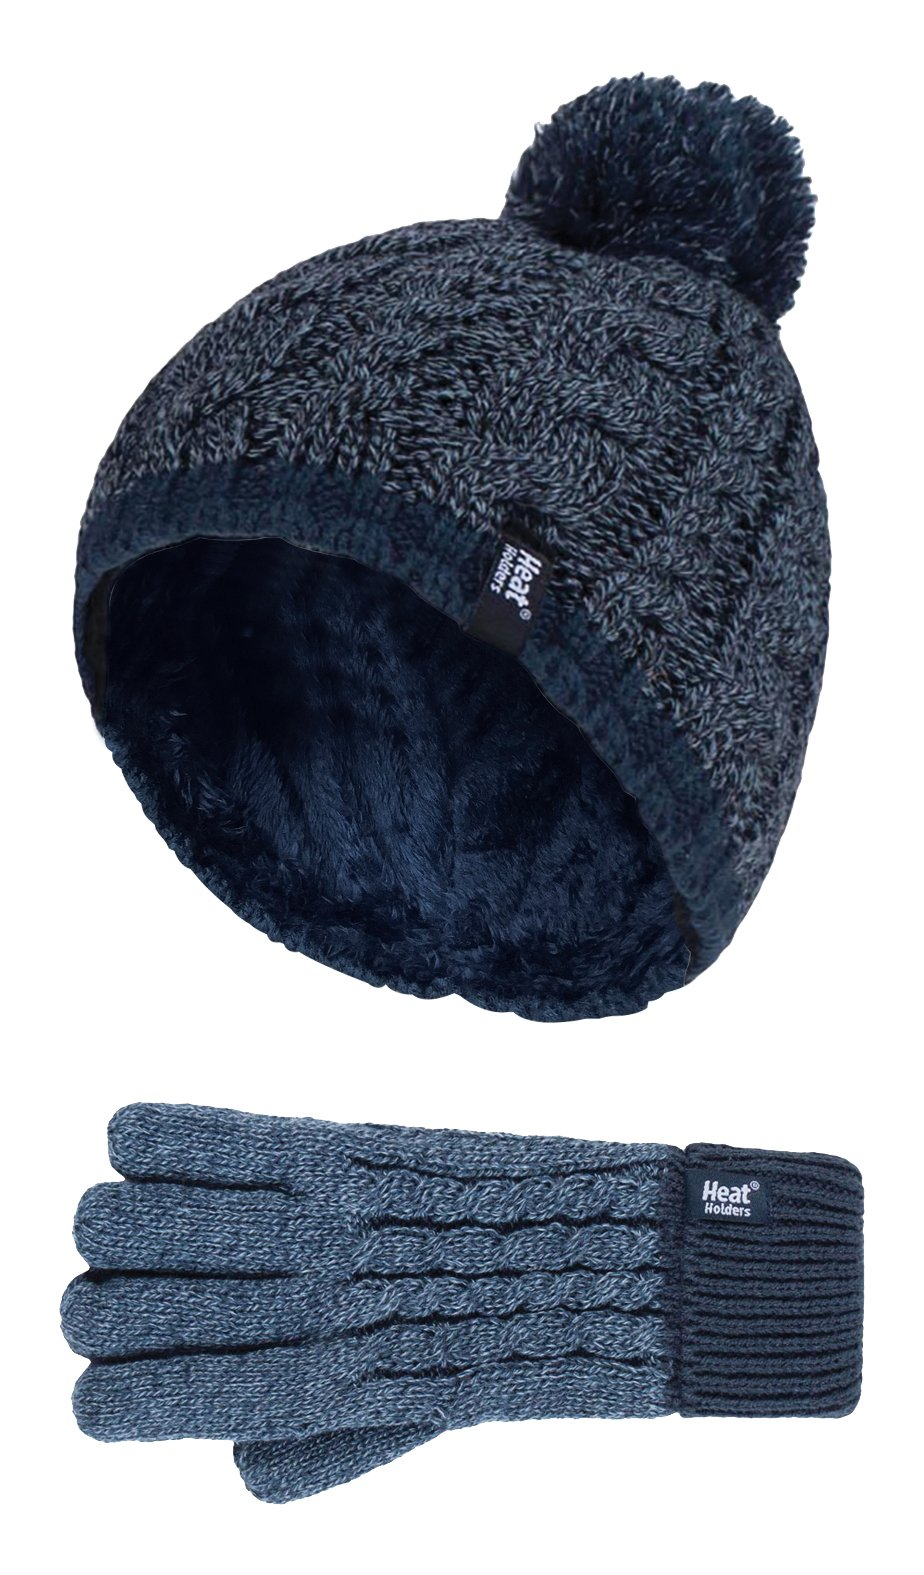 Heat Holders - Kids Boys Knitted Winter Pom Pom Cold Weather Hat and Gloves Set (7-10 Years, DN1P7)